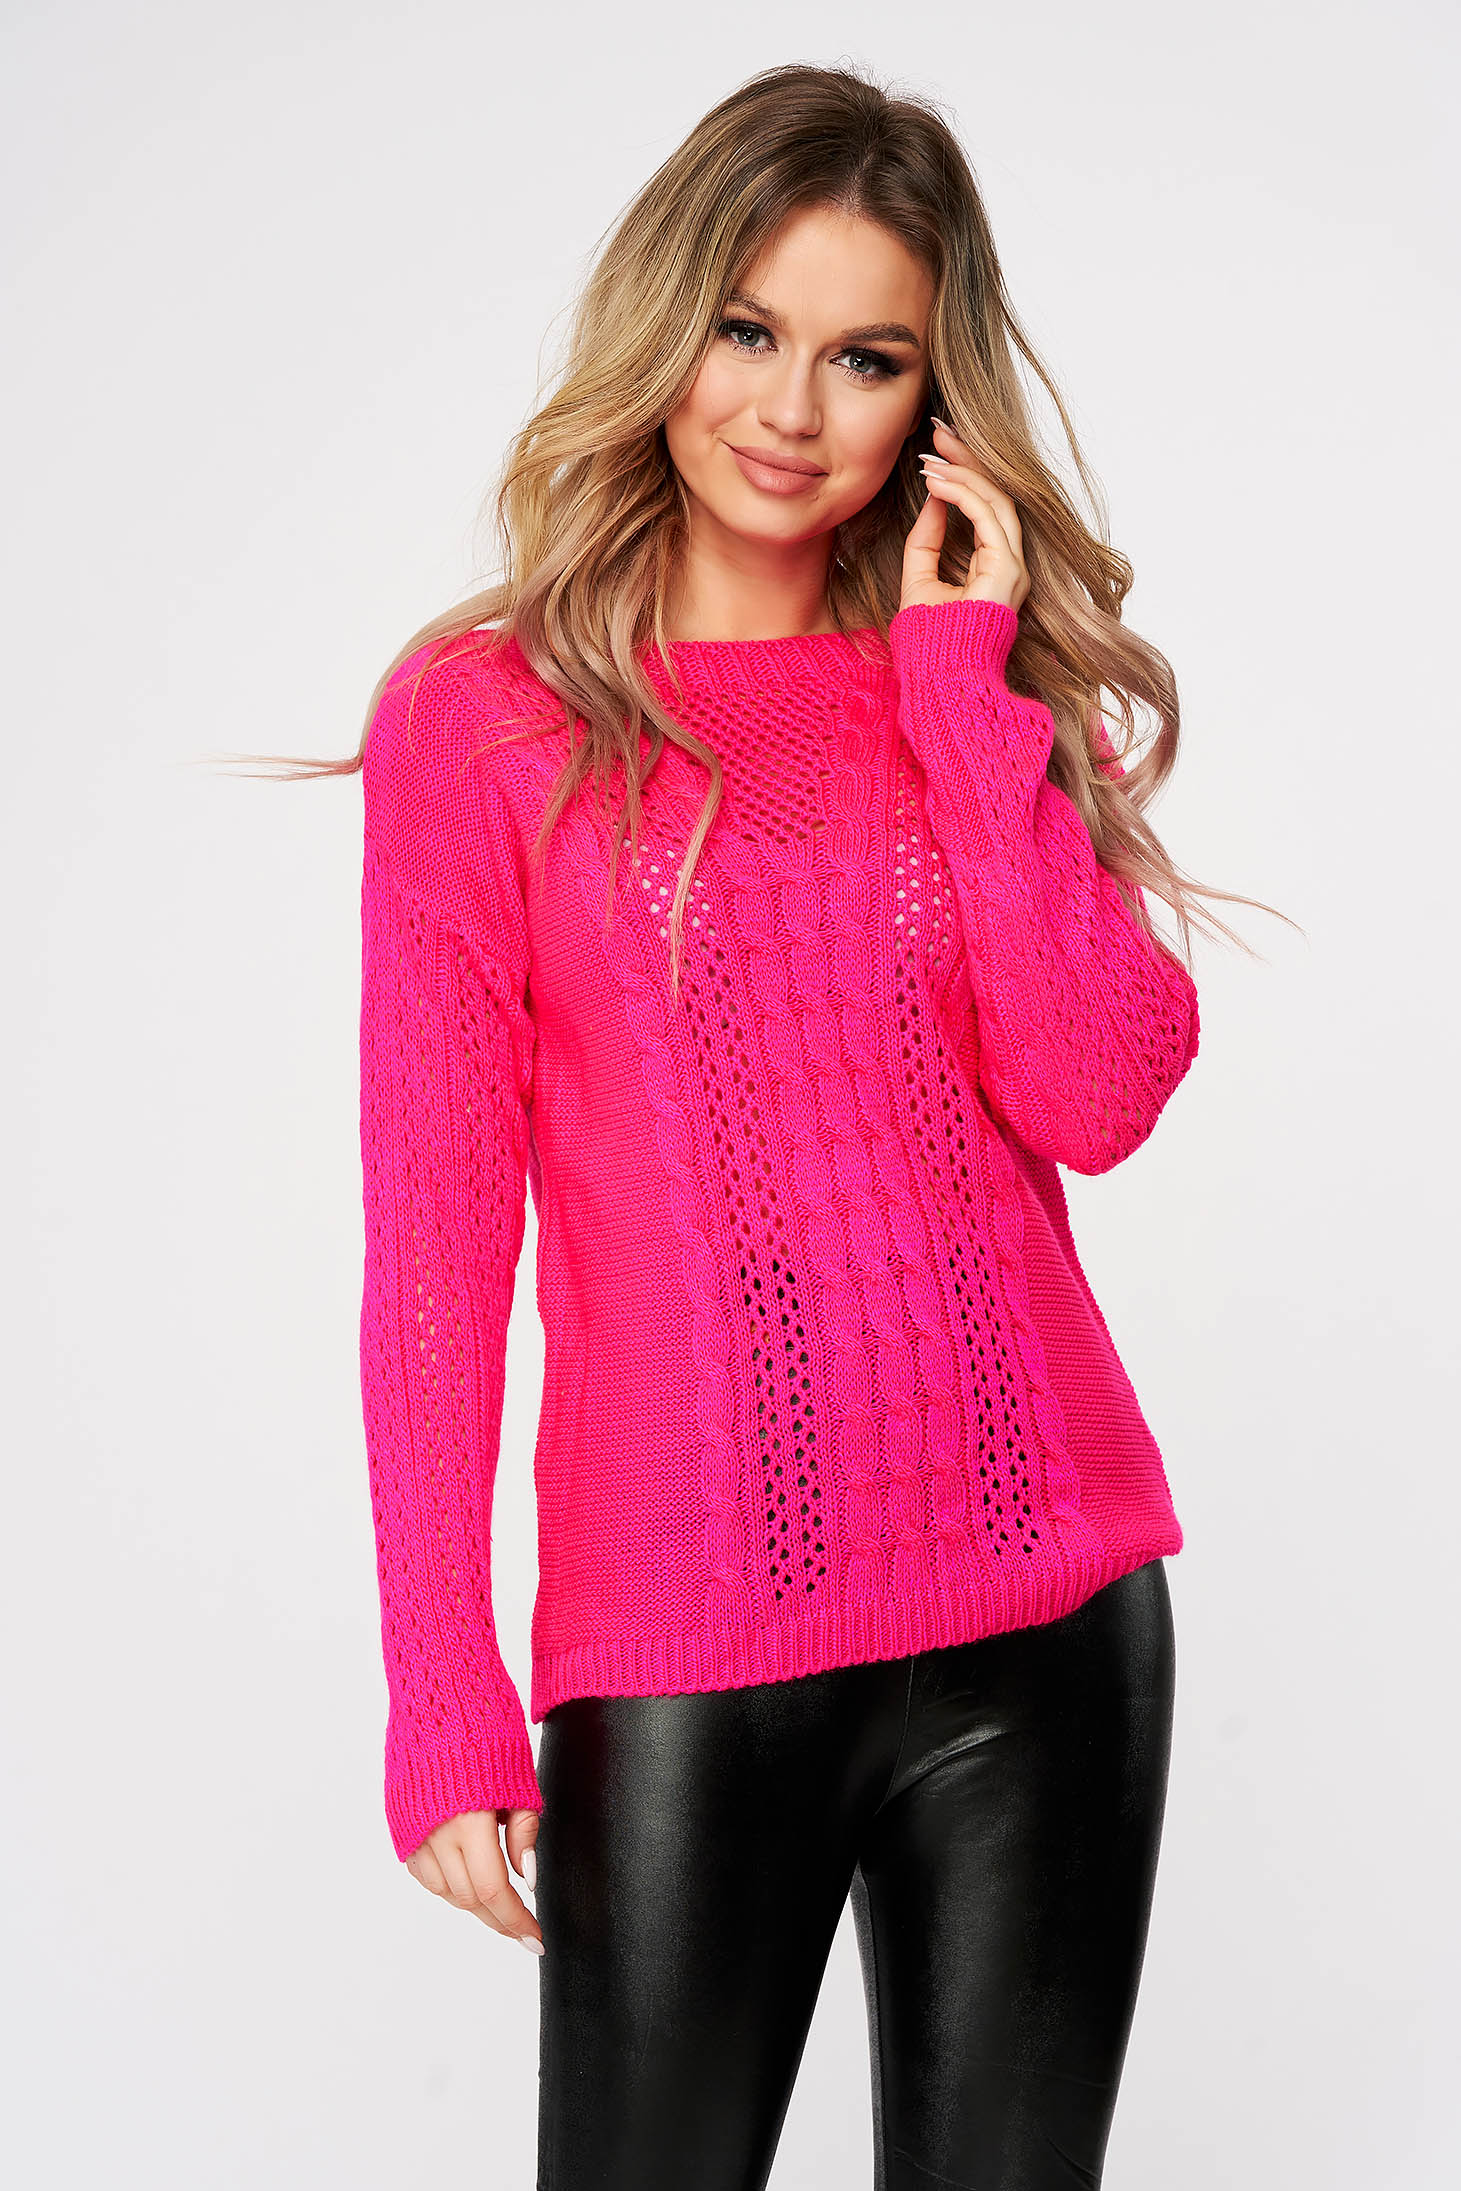 Pink sweater casual flared knitted with large collar